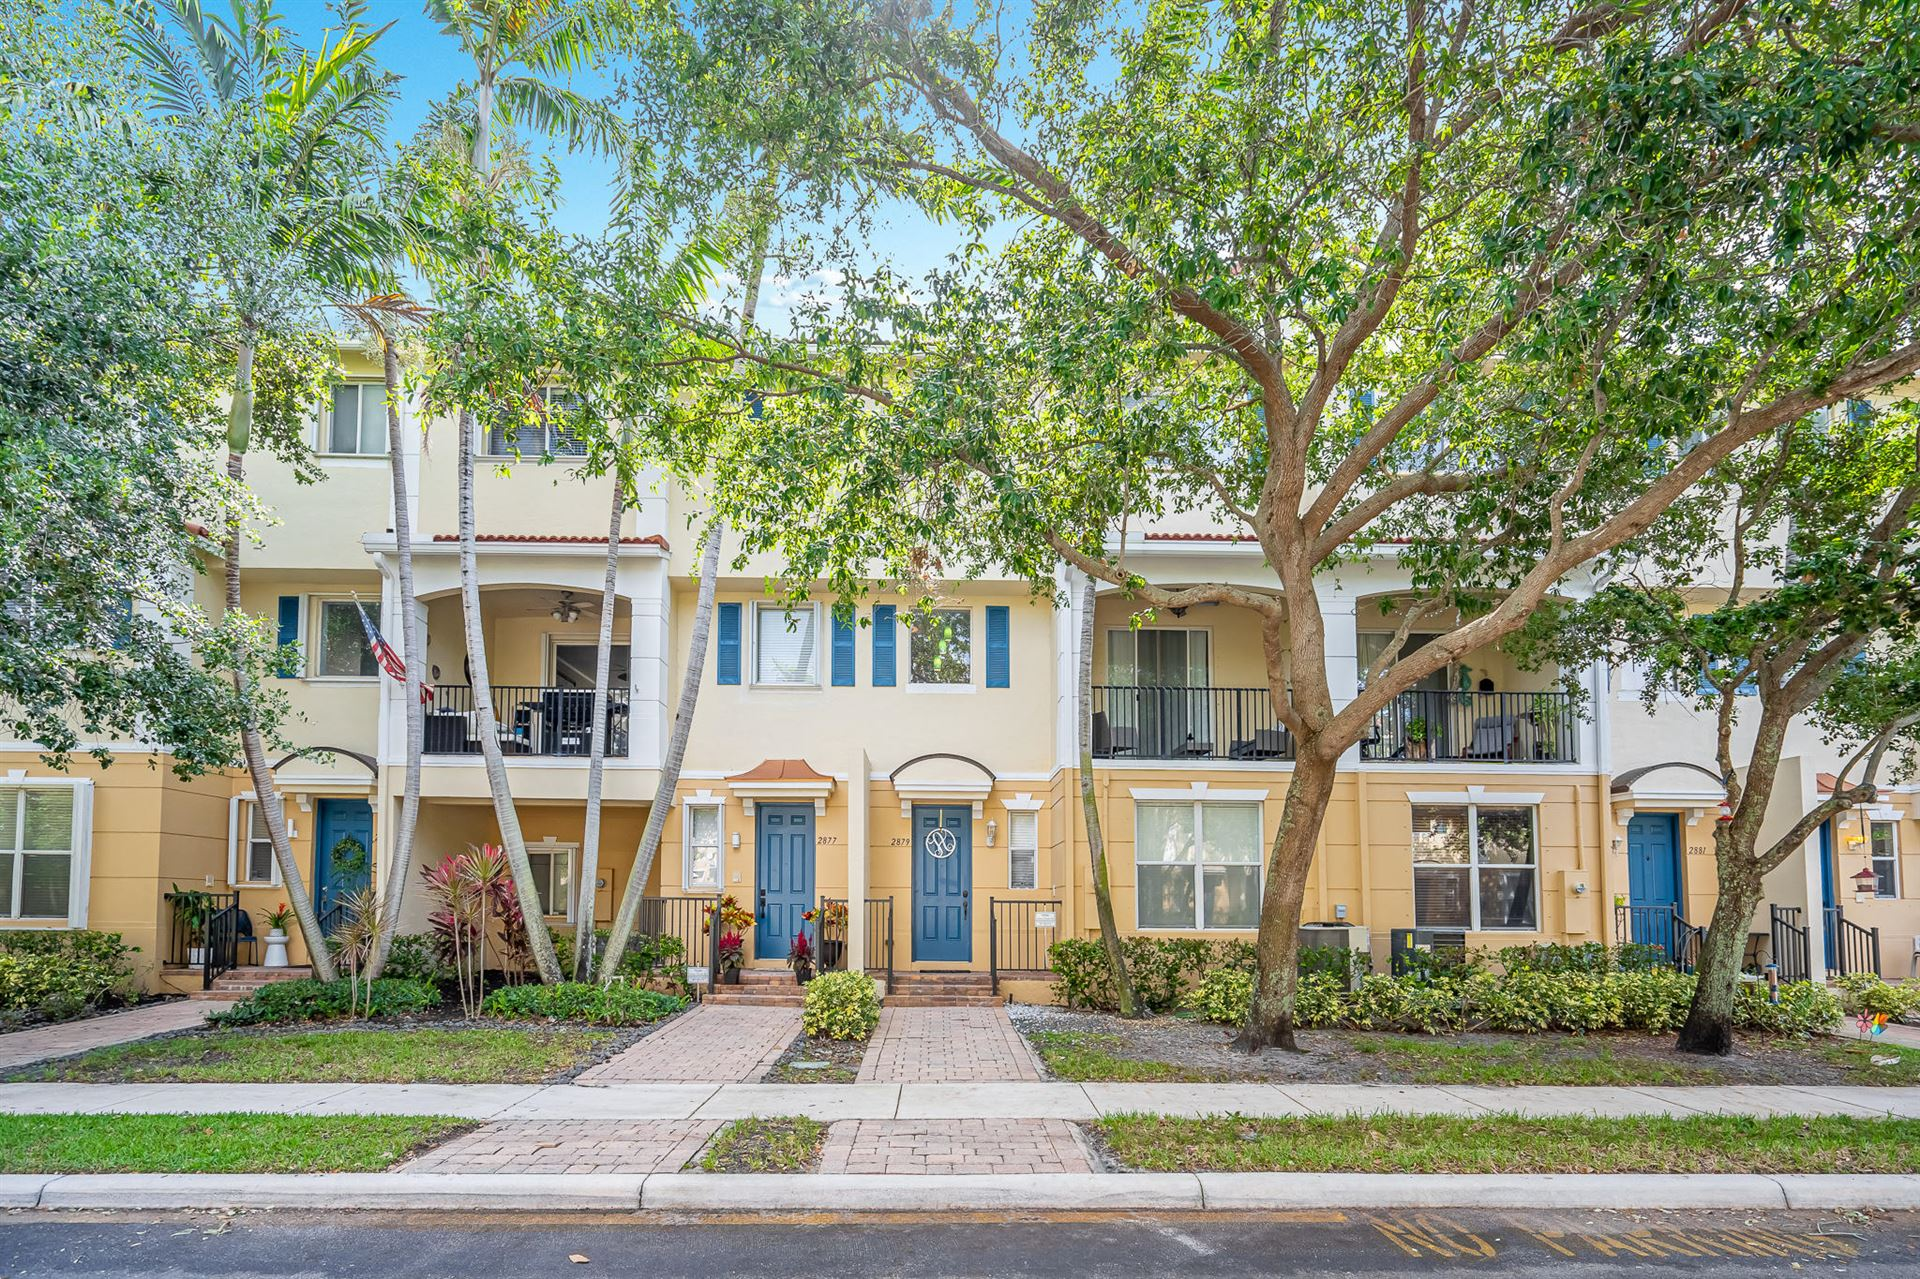 Photo of 2879 S Oasis Drive, Boynton Beach, FL 33426 (MLS # RX-10710897)